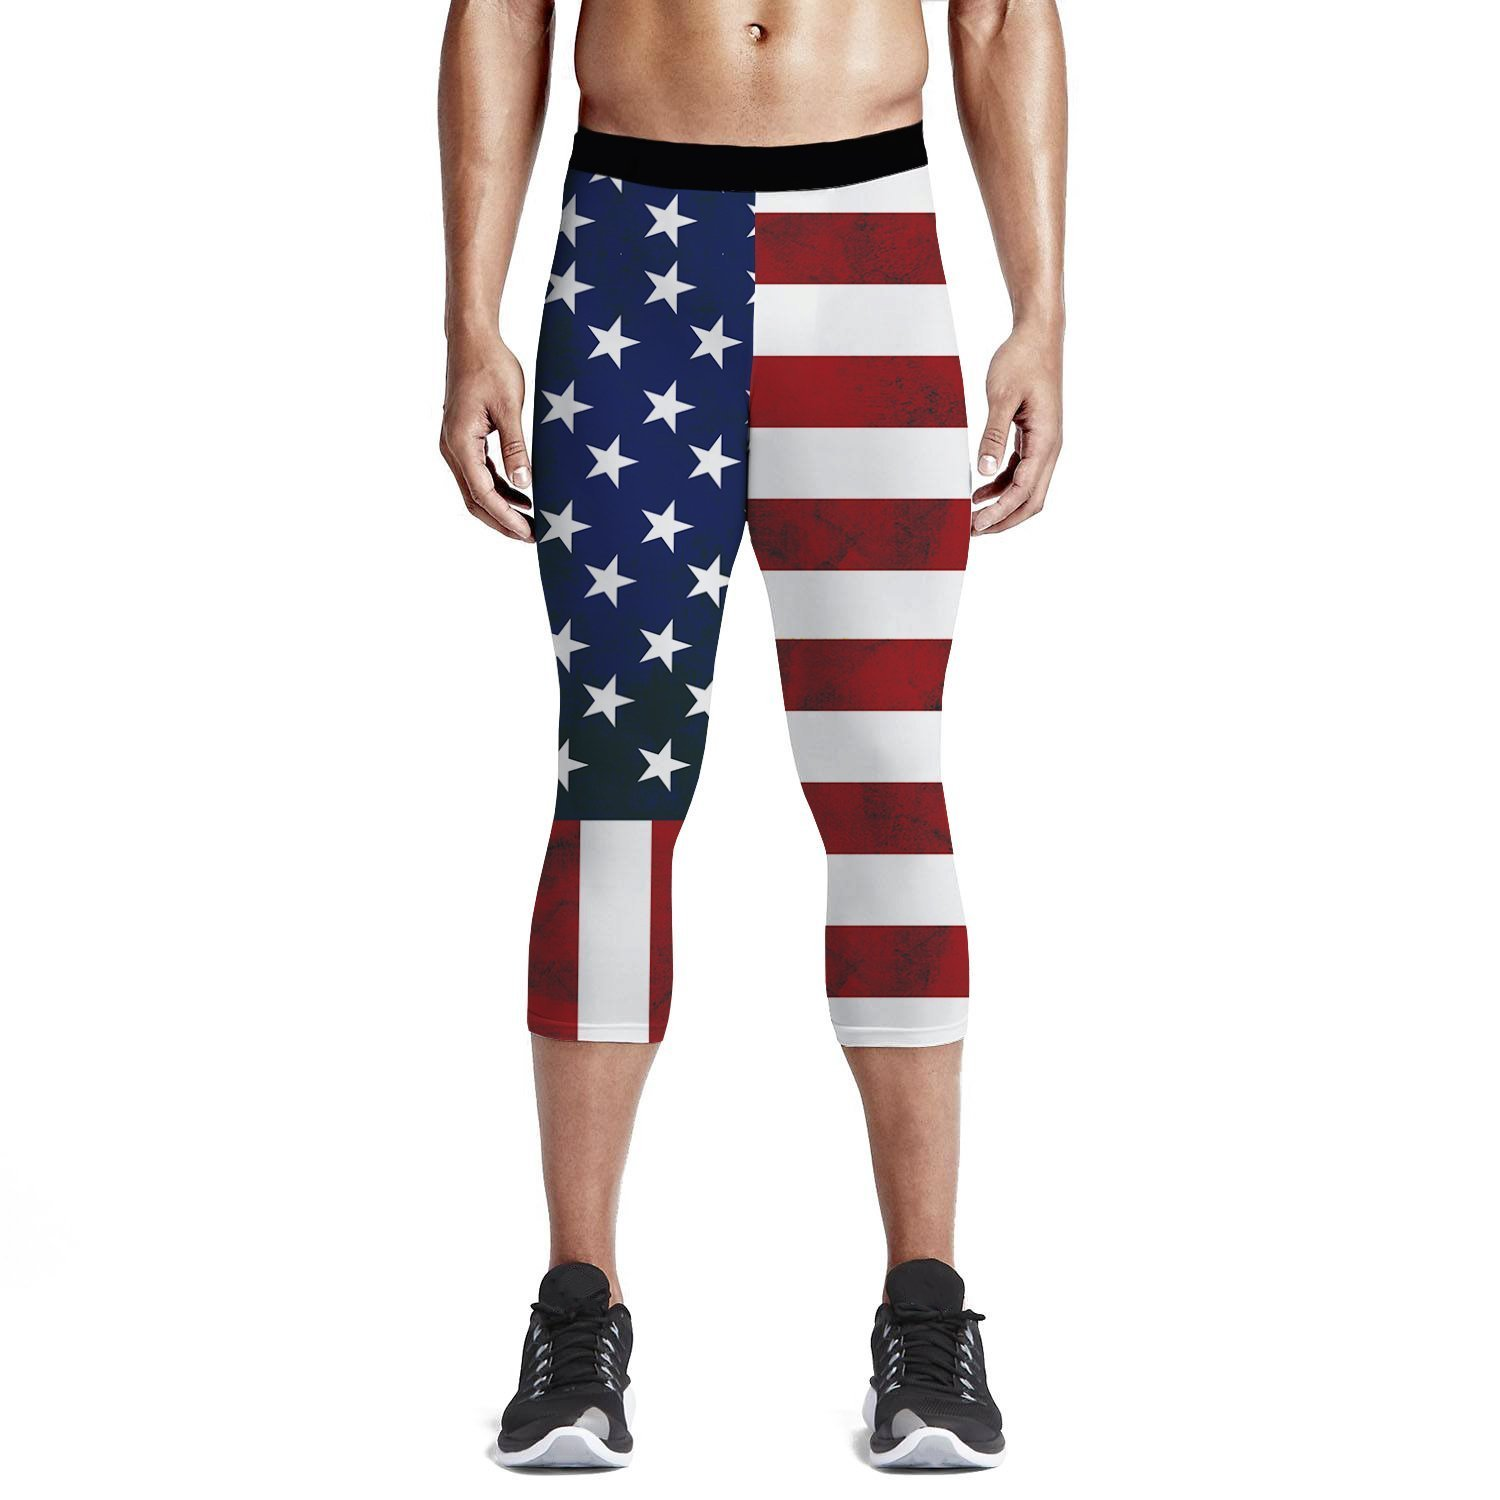 4db4c0142 Amazon.com: Men's Compression 3/4 Capri Shorts Baselayer Cool Dry Sports  Tights, American Flag Workout Running Tights Pants and Leggings: Clothing